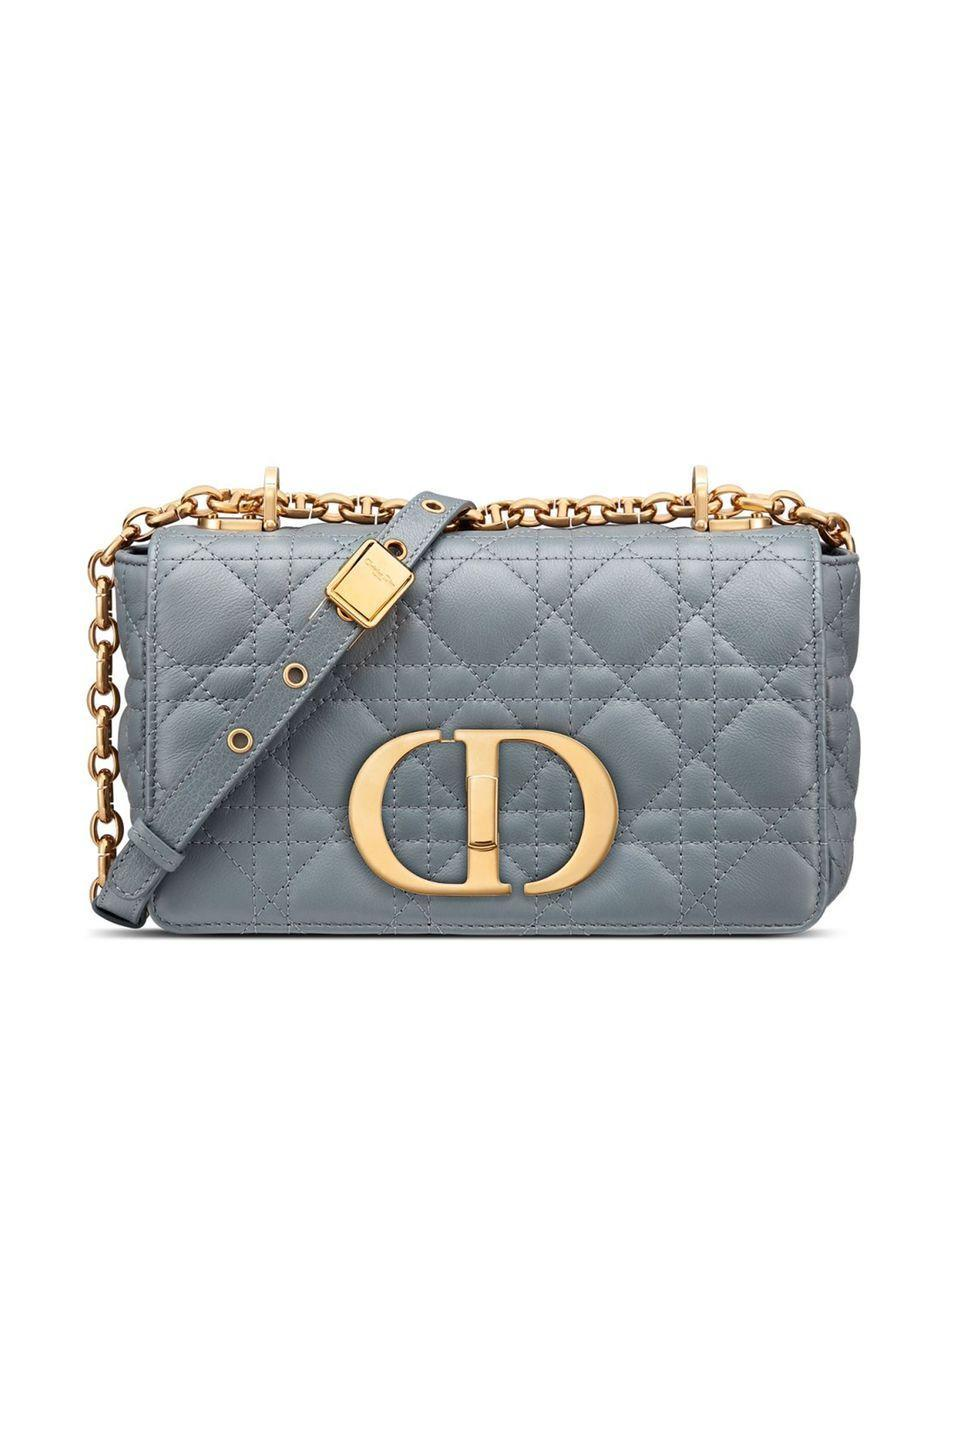 "<p><strong>Who: </strong>Dior</p><p><strong>What: </strong>The Dior Caro Bag</p><p><strong>Where: </strong>Available now on Dior.com</p><p><strong>Why: </strong>Dior's latest handbag offering is the Caro, inspired by the brand's iconic Cannage pattern. The bag uses over 18,000 individual stitches to create the pattern and includes the signature CD gold clasp. It comes in a variety of colors and two sizes, and includes a handy shoulder strap for hand-free use.</p><p><a class=""link rapid-noclick-resp"" href=""https://go.redirectingat.com?id=74968X1596630&url=https%3A%2F%2Fwww.dior.com%2Fen_us%2Fwomens-fashion%2Fdior-caro&sref=https%3A%2F%2Fwww.elle.com%2Ffashion%2Fg34965868%2Fnew-fashion-launch-collaborations-january-2021%2F"" rel=""nofollow noopener"" target=""_blank"" data-ylk=""slk:SHOP NOW"">SHOP NOW</a></p>"